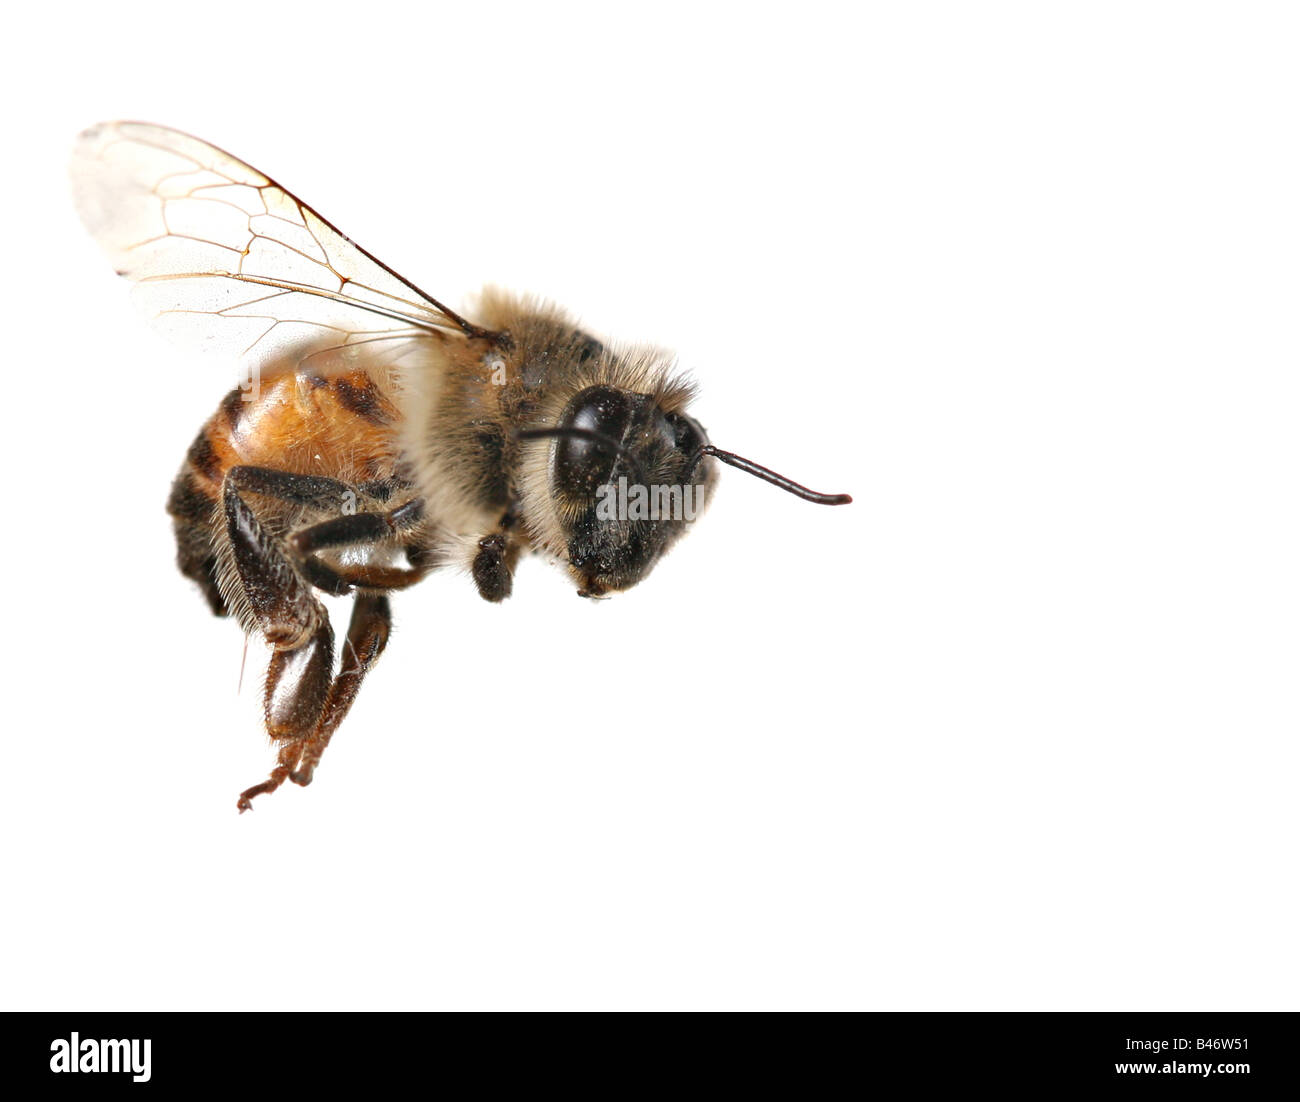 Macro Image of Common Honey Bee From North America Flying on White Background - Stock Image